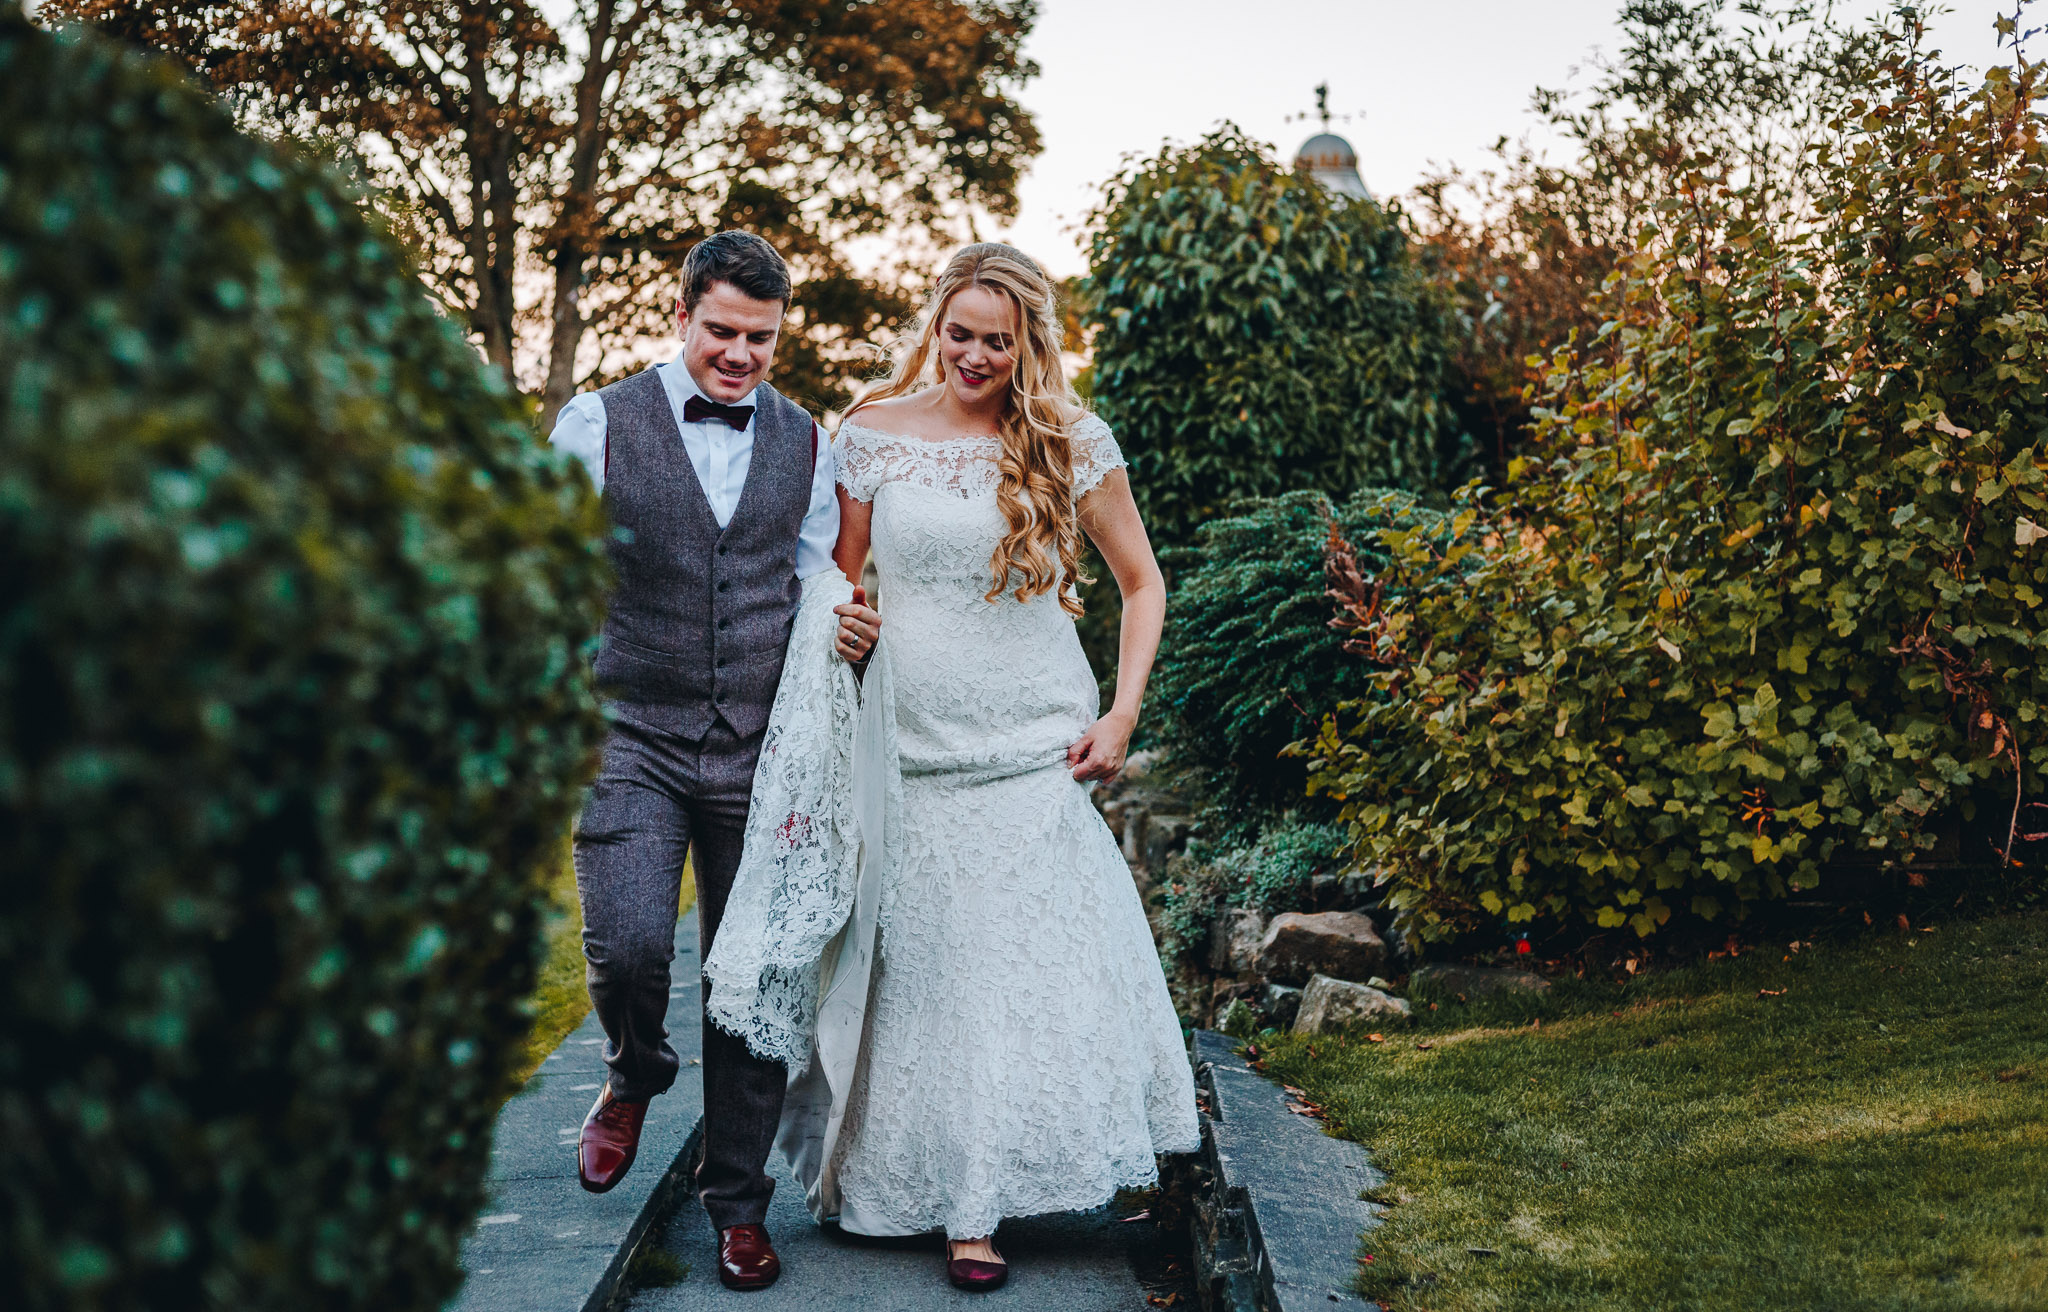 Cubley Hall Wedding Photographer Penistone Autumnal Wedding by Andy Matheson Photography_100-3.jpg